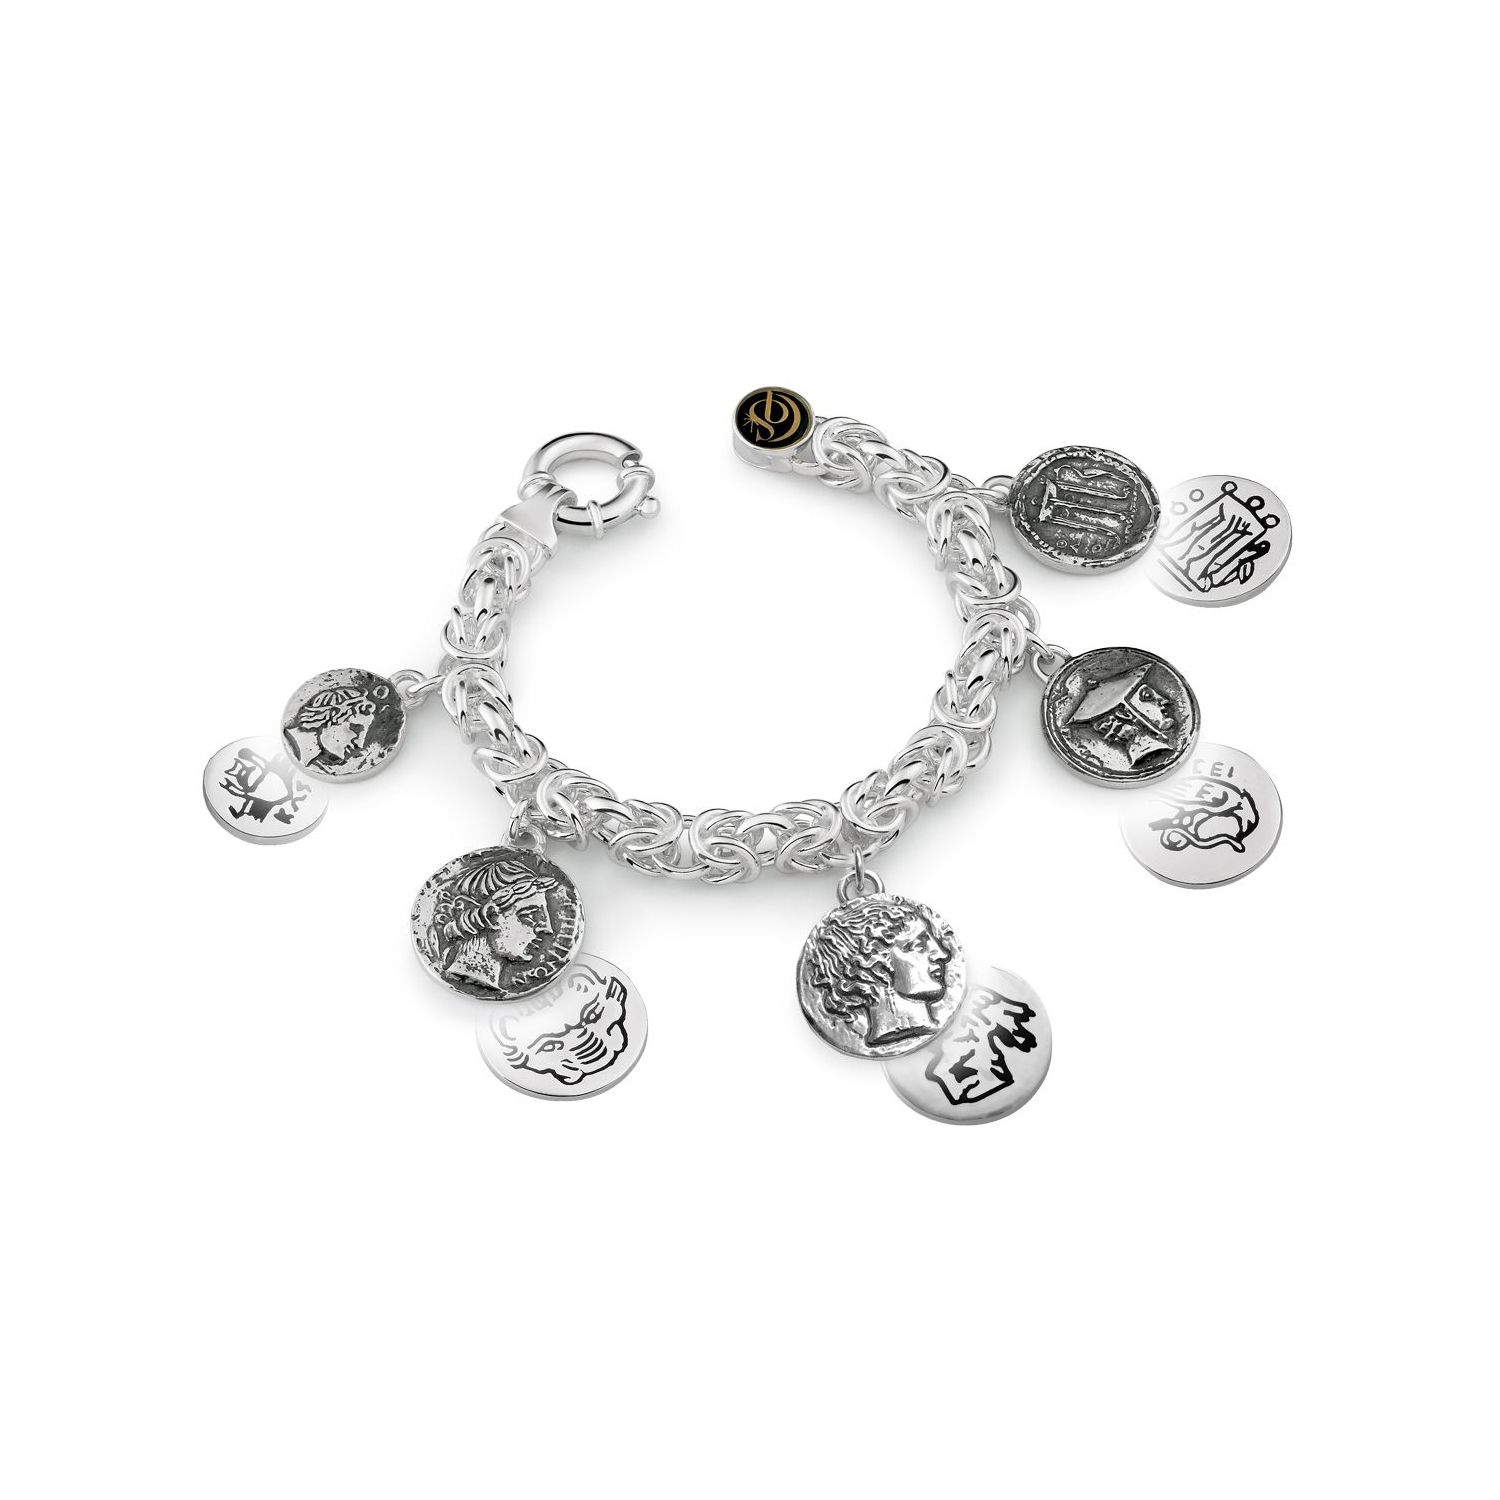 Bracelet with Coins (33343)